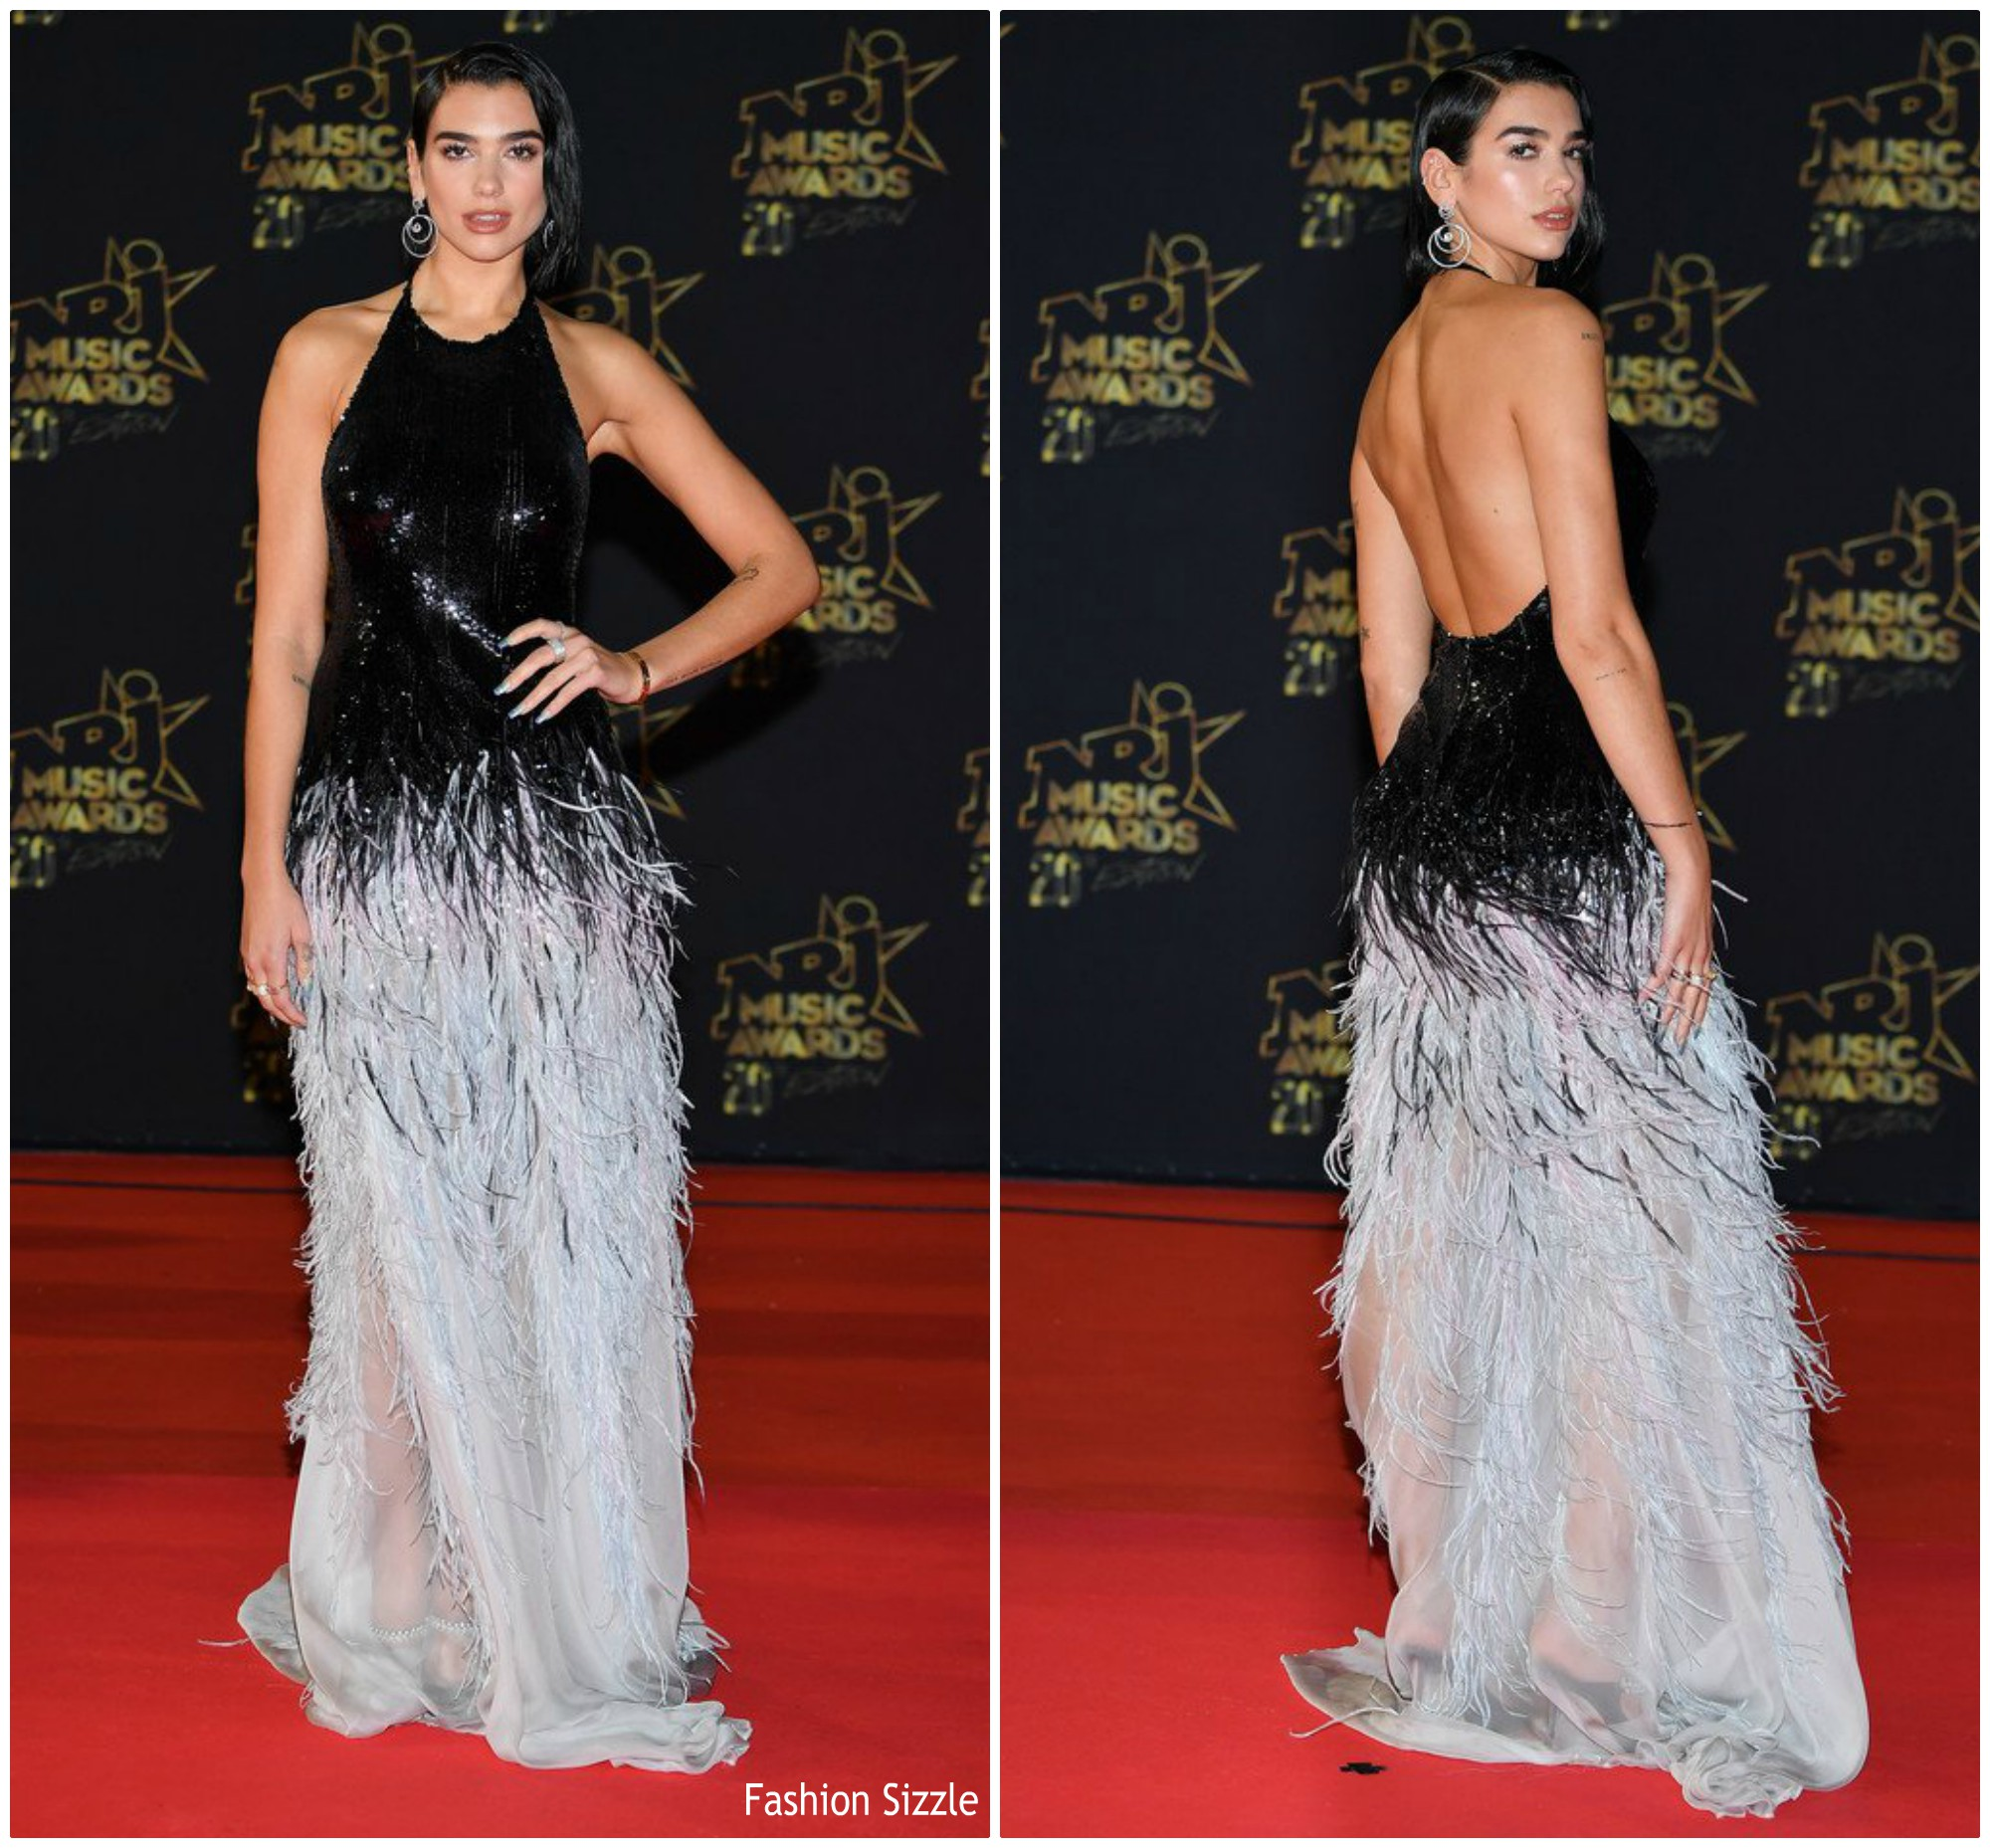 dua-lipa-in-armani-prive-20th-nrj-music-awards